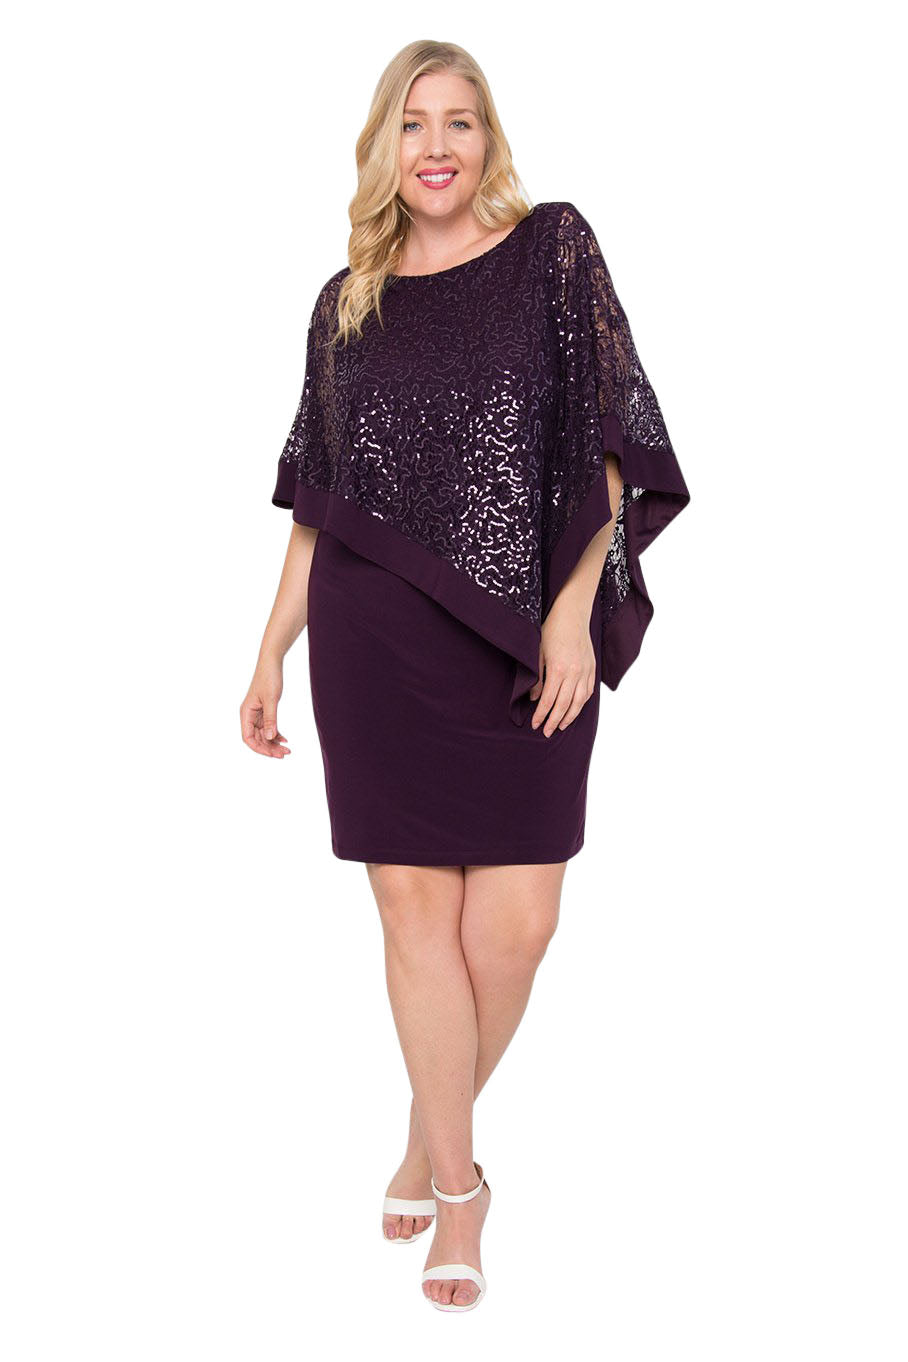 R&M Richards Short Plus Size Mother of the Bride Poncho Cape Dress - The Dress Outlet Plum